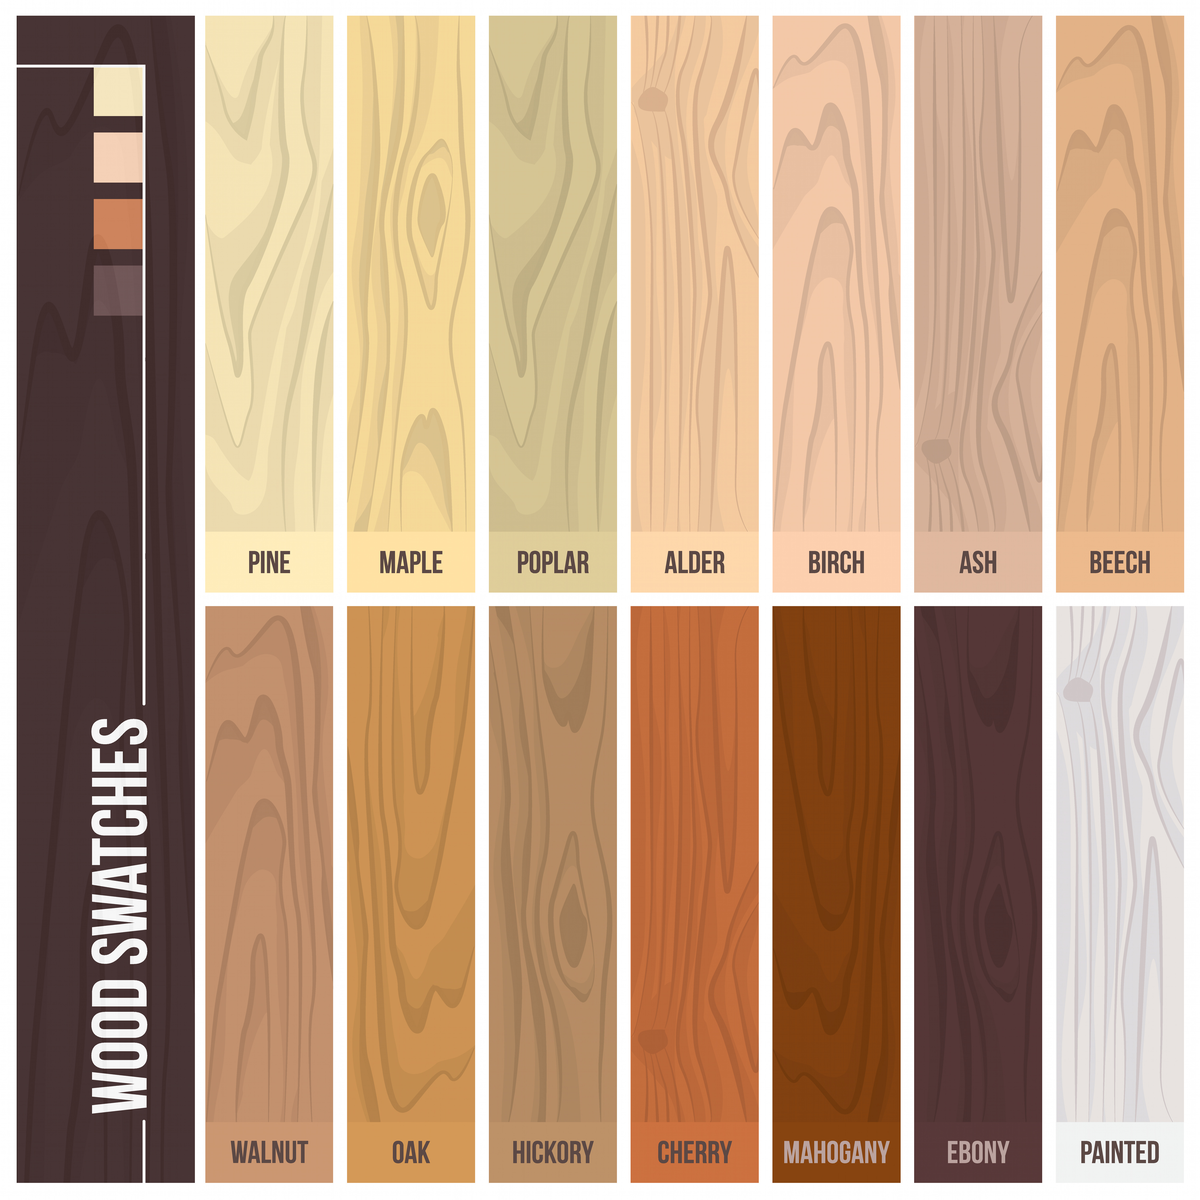 hardwood flooring types types of hardwood flooring illustrated guide PJCRHDE